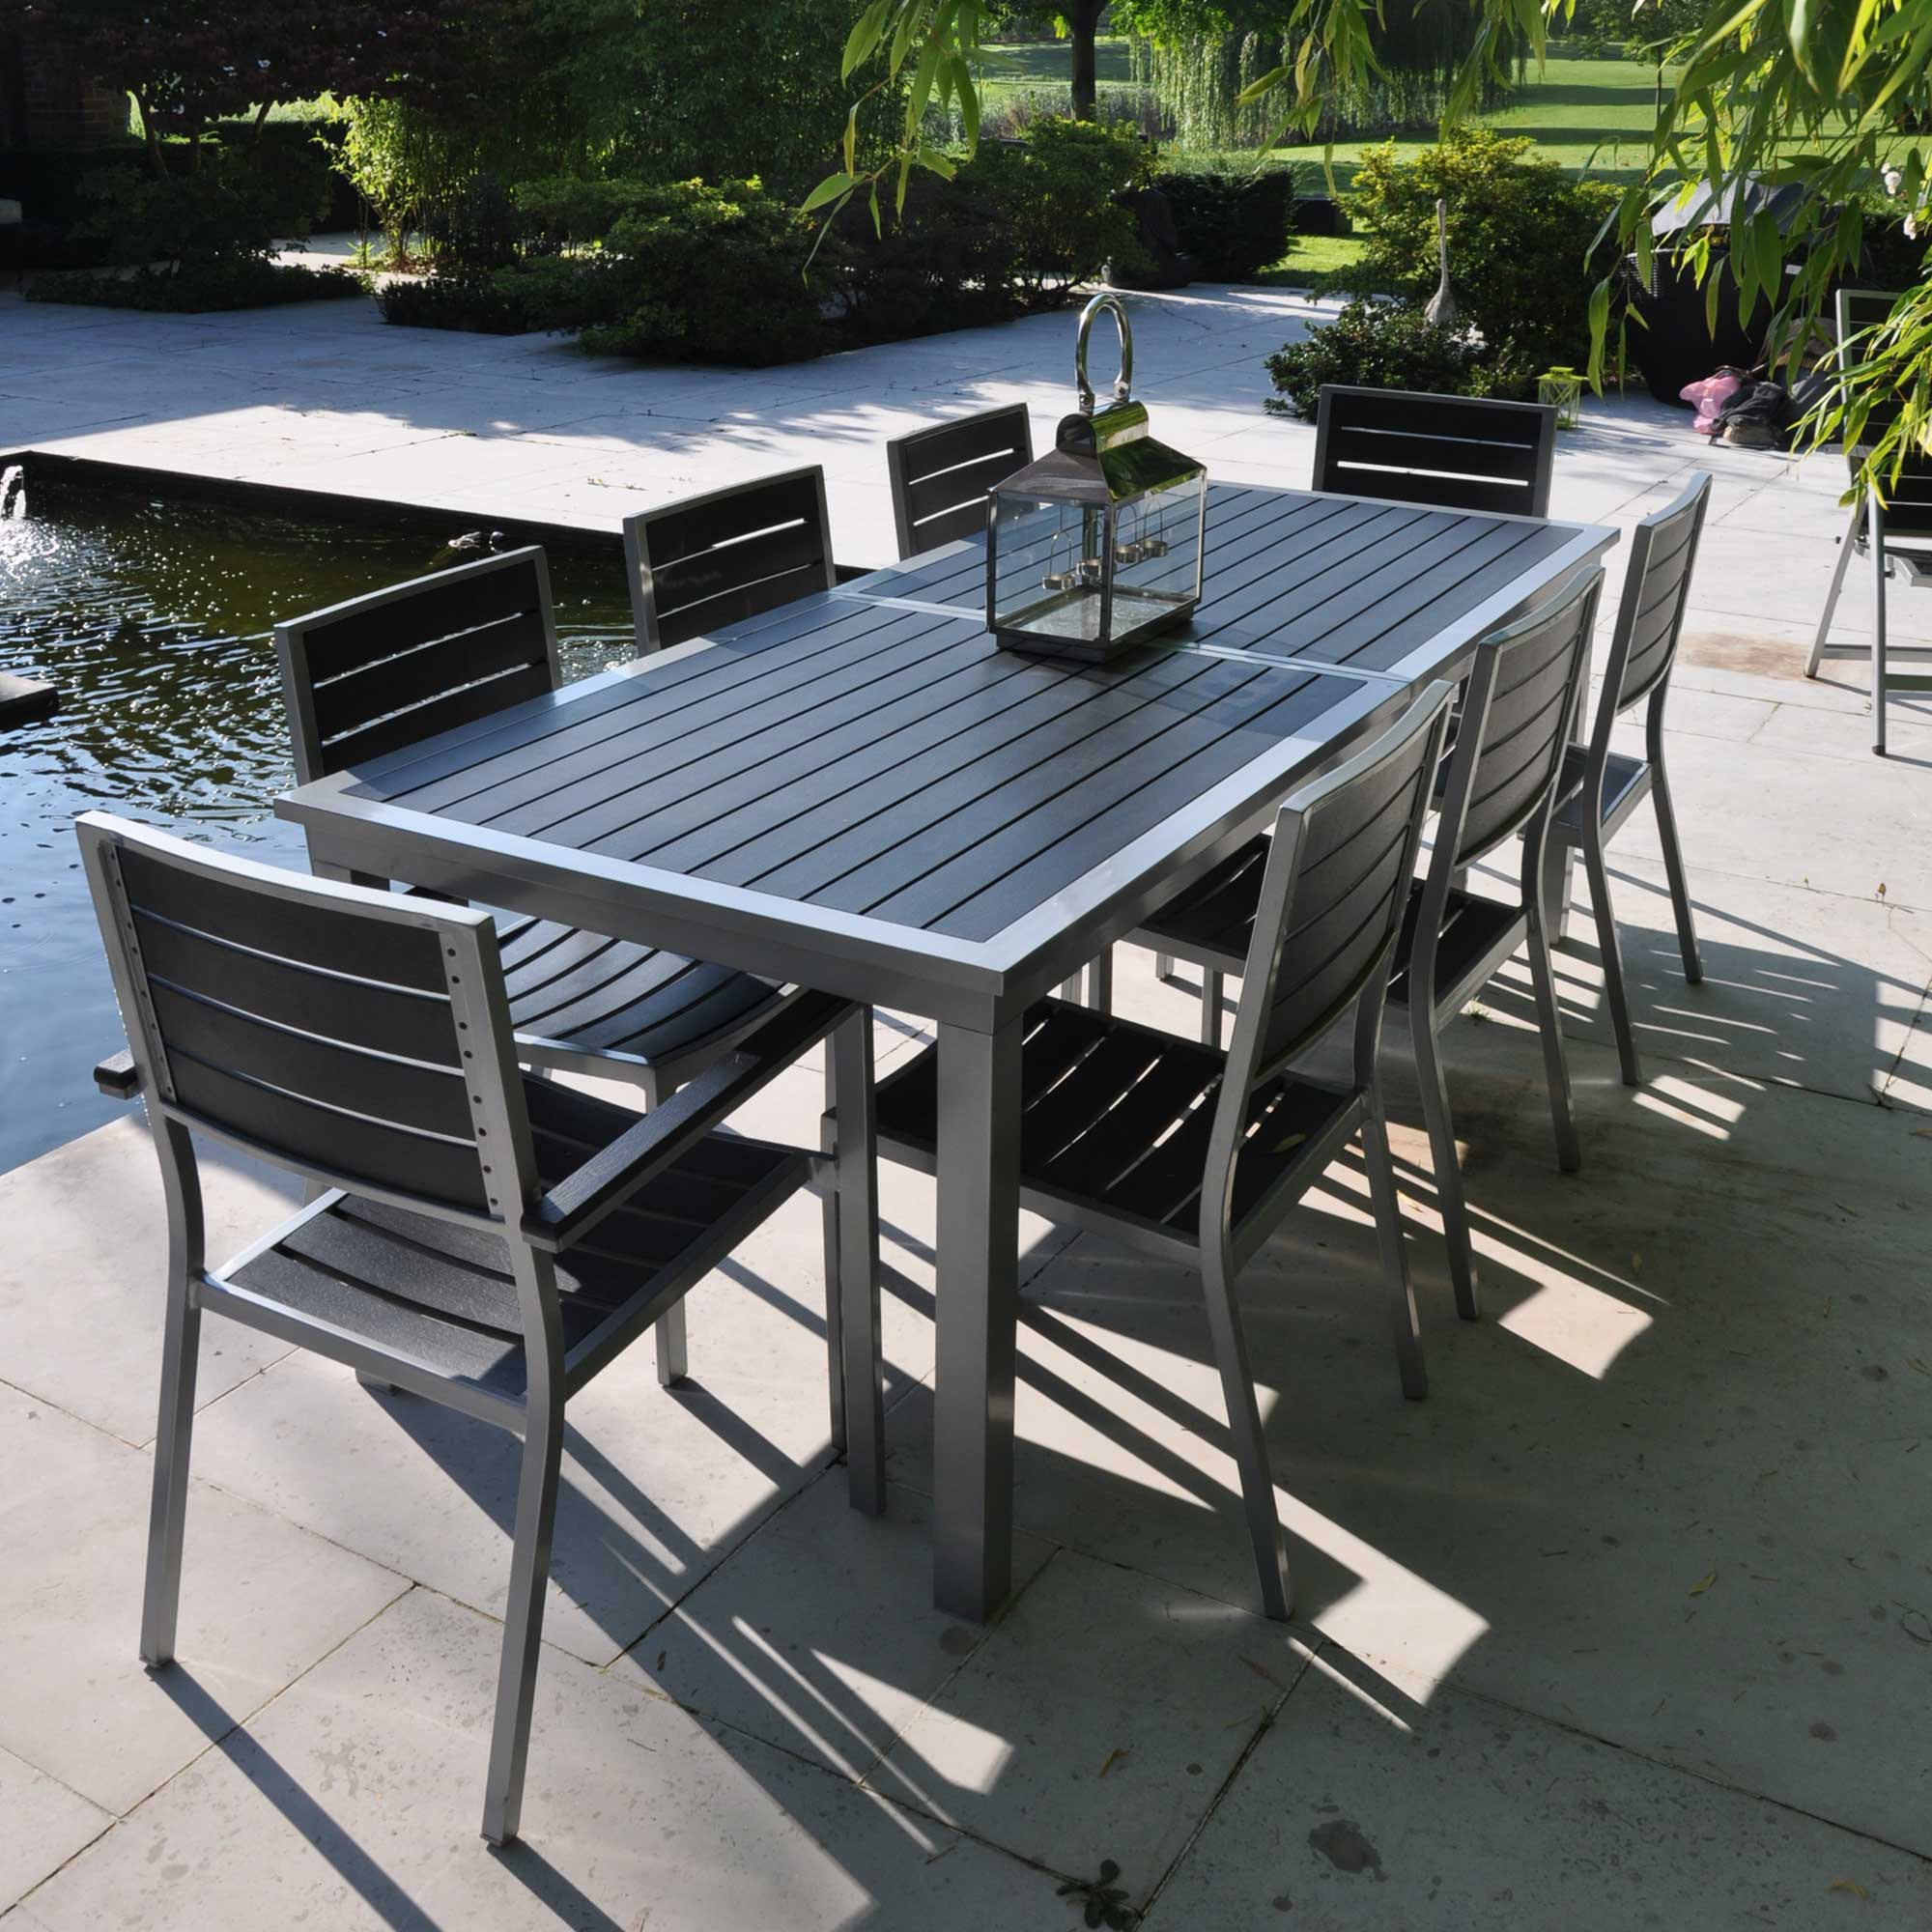 ensemble table et chaise de jardin aluminium menuiserie. Black Bedroom Furniture Sets. Home Design Ideas